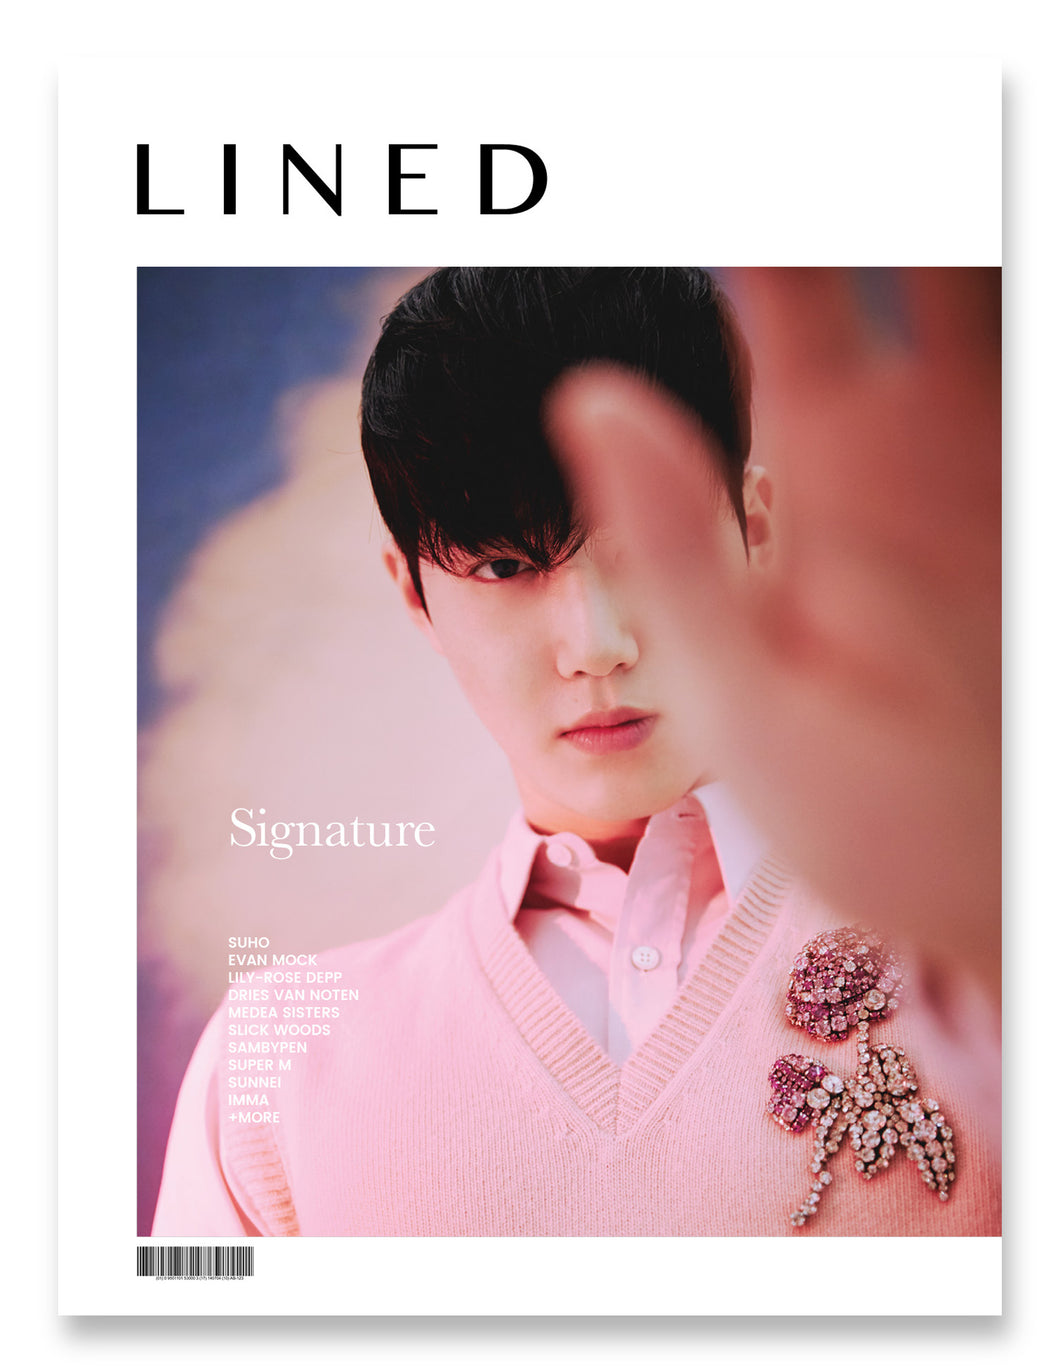 Vol 4. Signature: An Art Issue